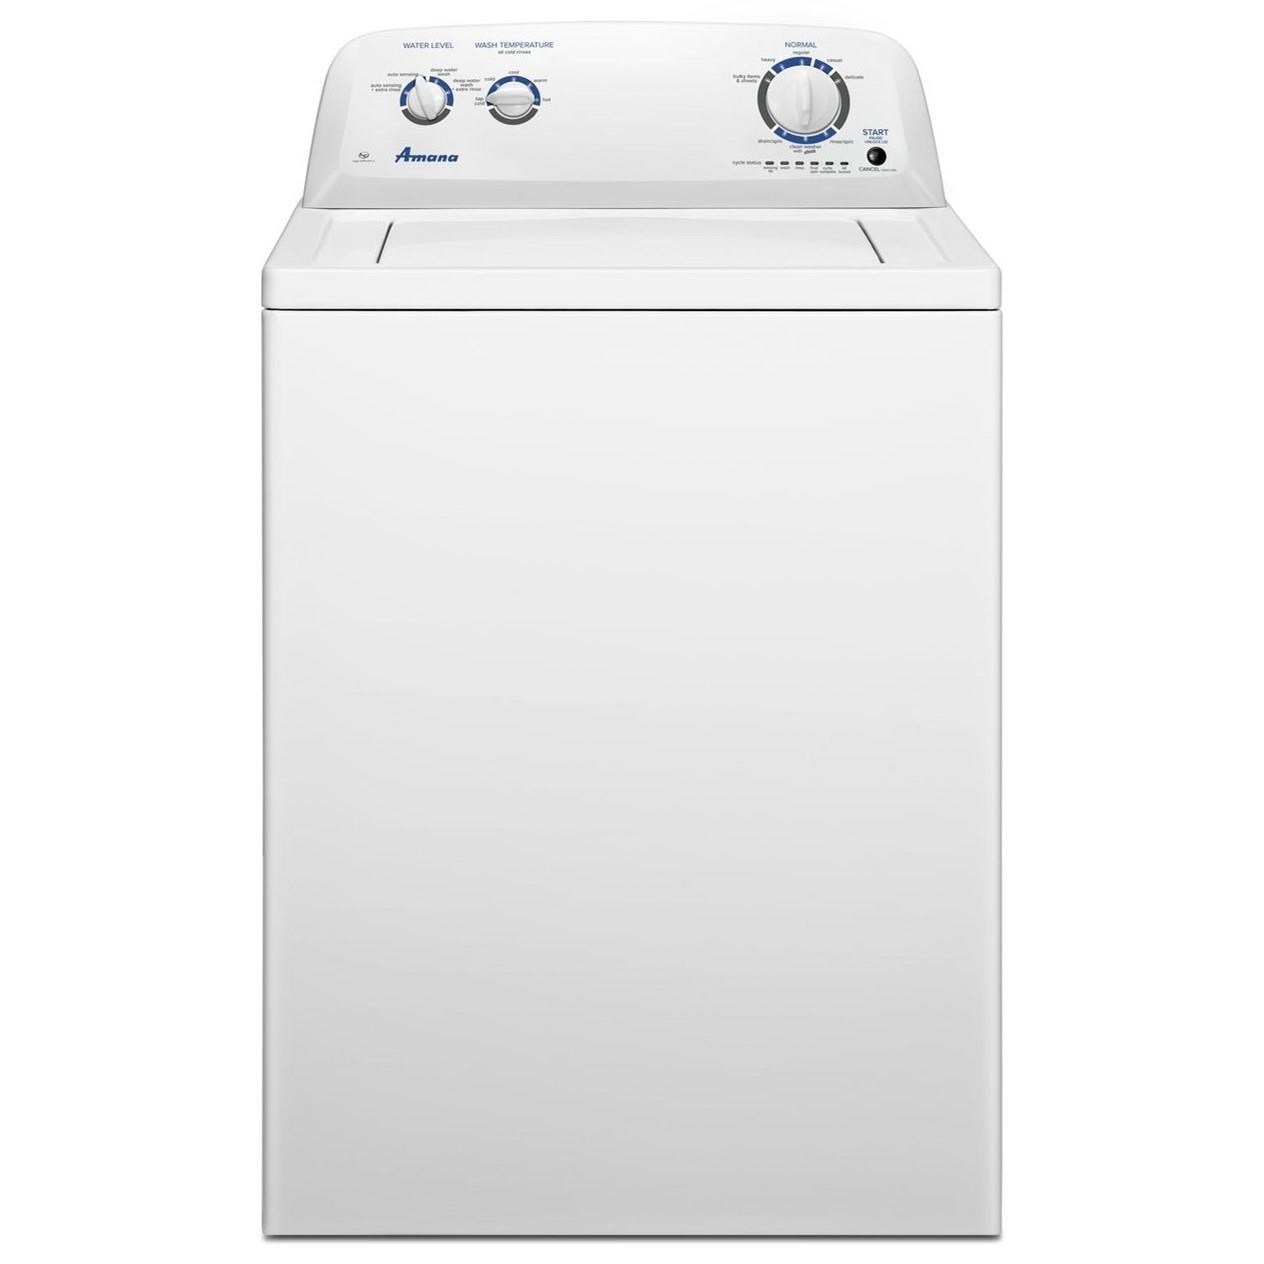 Washers 3.5 cu. ft. Top-Load Washer by Amana at Furniture and ApplianceMart